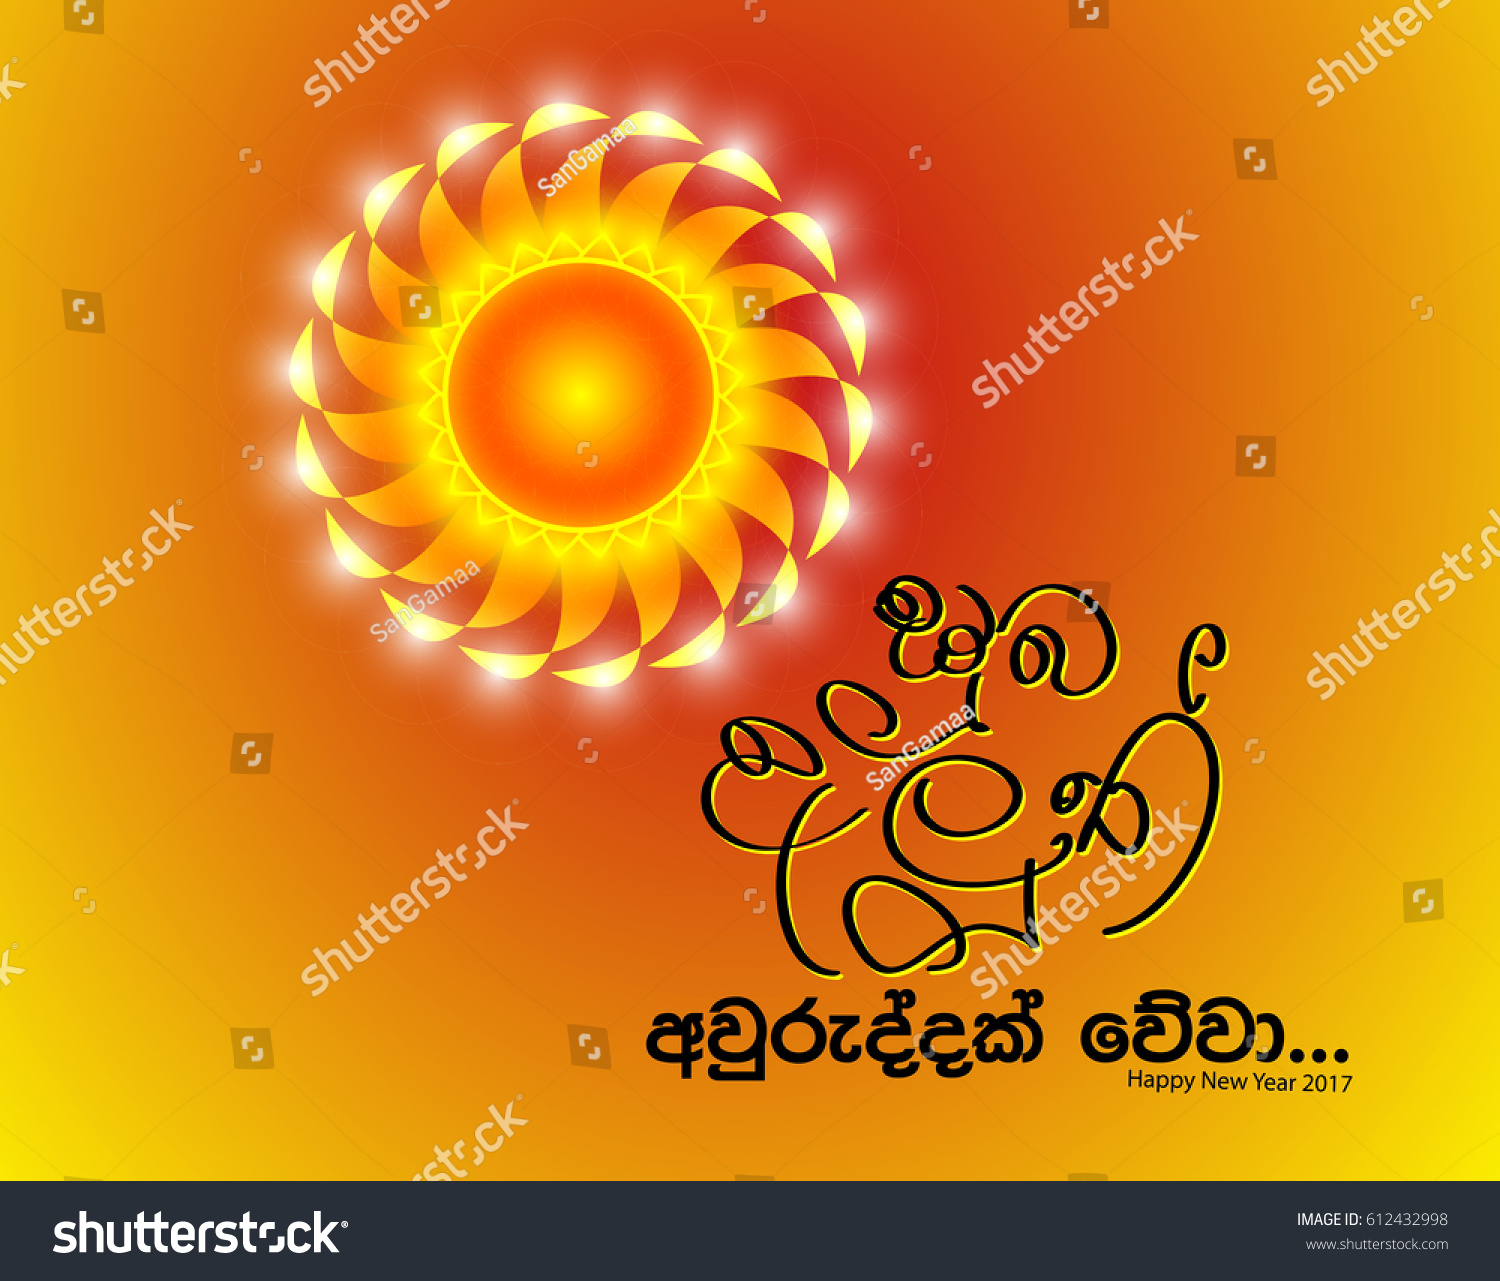 sinhalese hindu tamil new year happy stock vector royalty free 612432998 https www shutterstock com image vector sinhalese hindu tamil new year happy 612432998